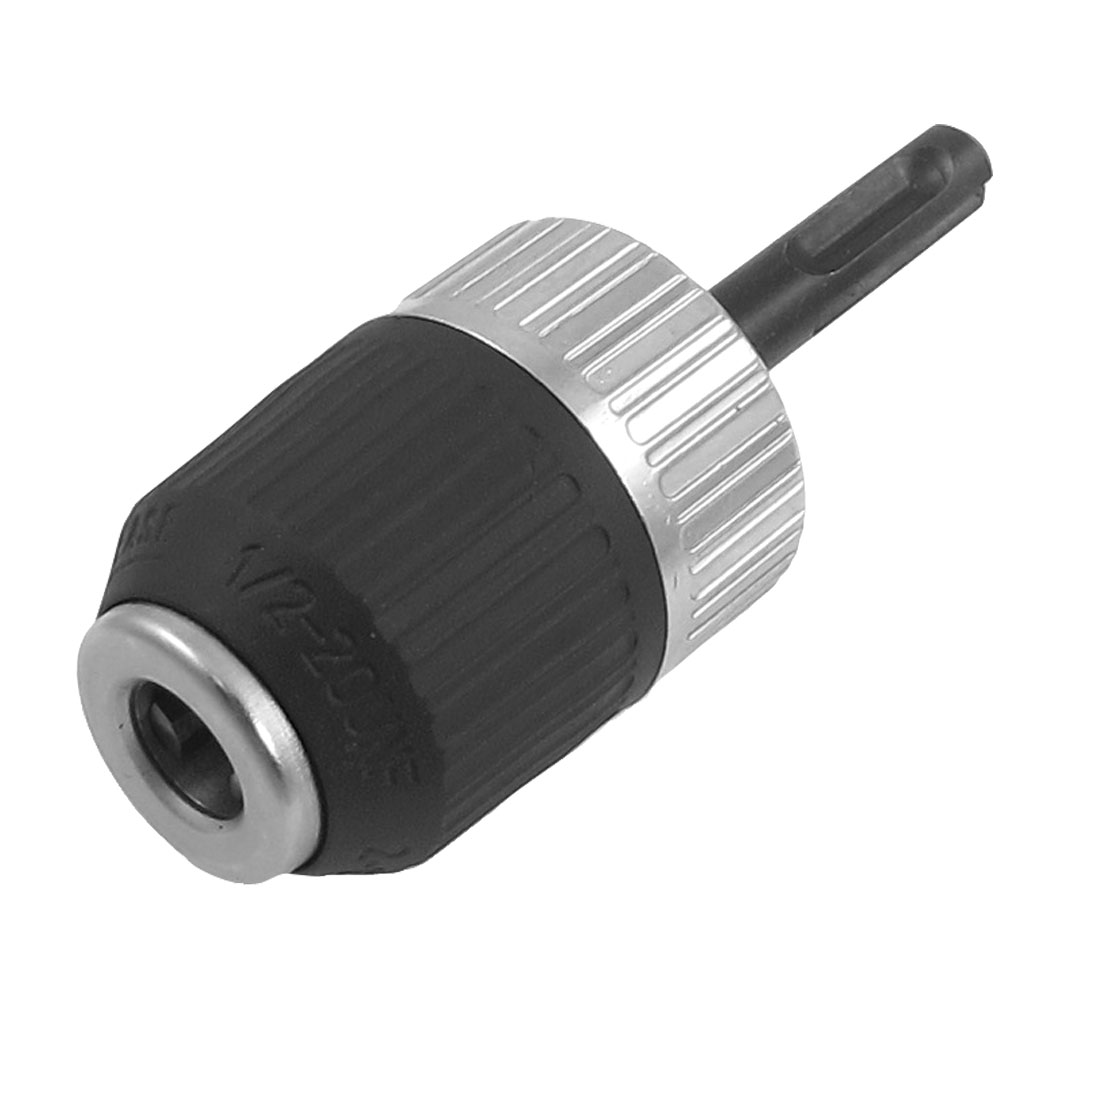 1/2-20 UNF Mount 2-13mm Capacity Keyless Drill Chuck w SDS Plus Shank